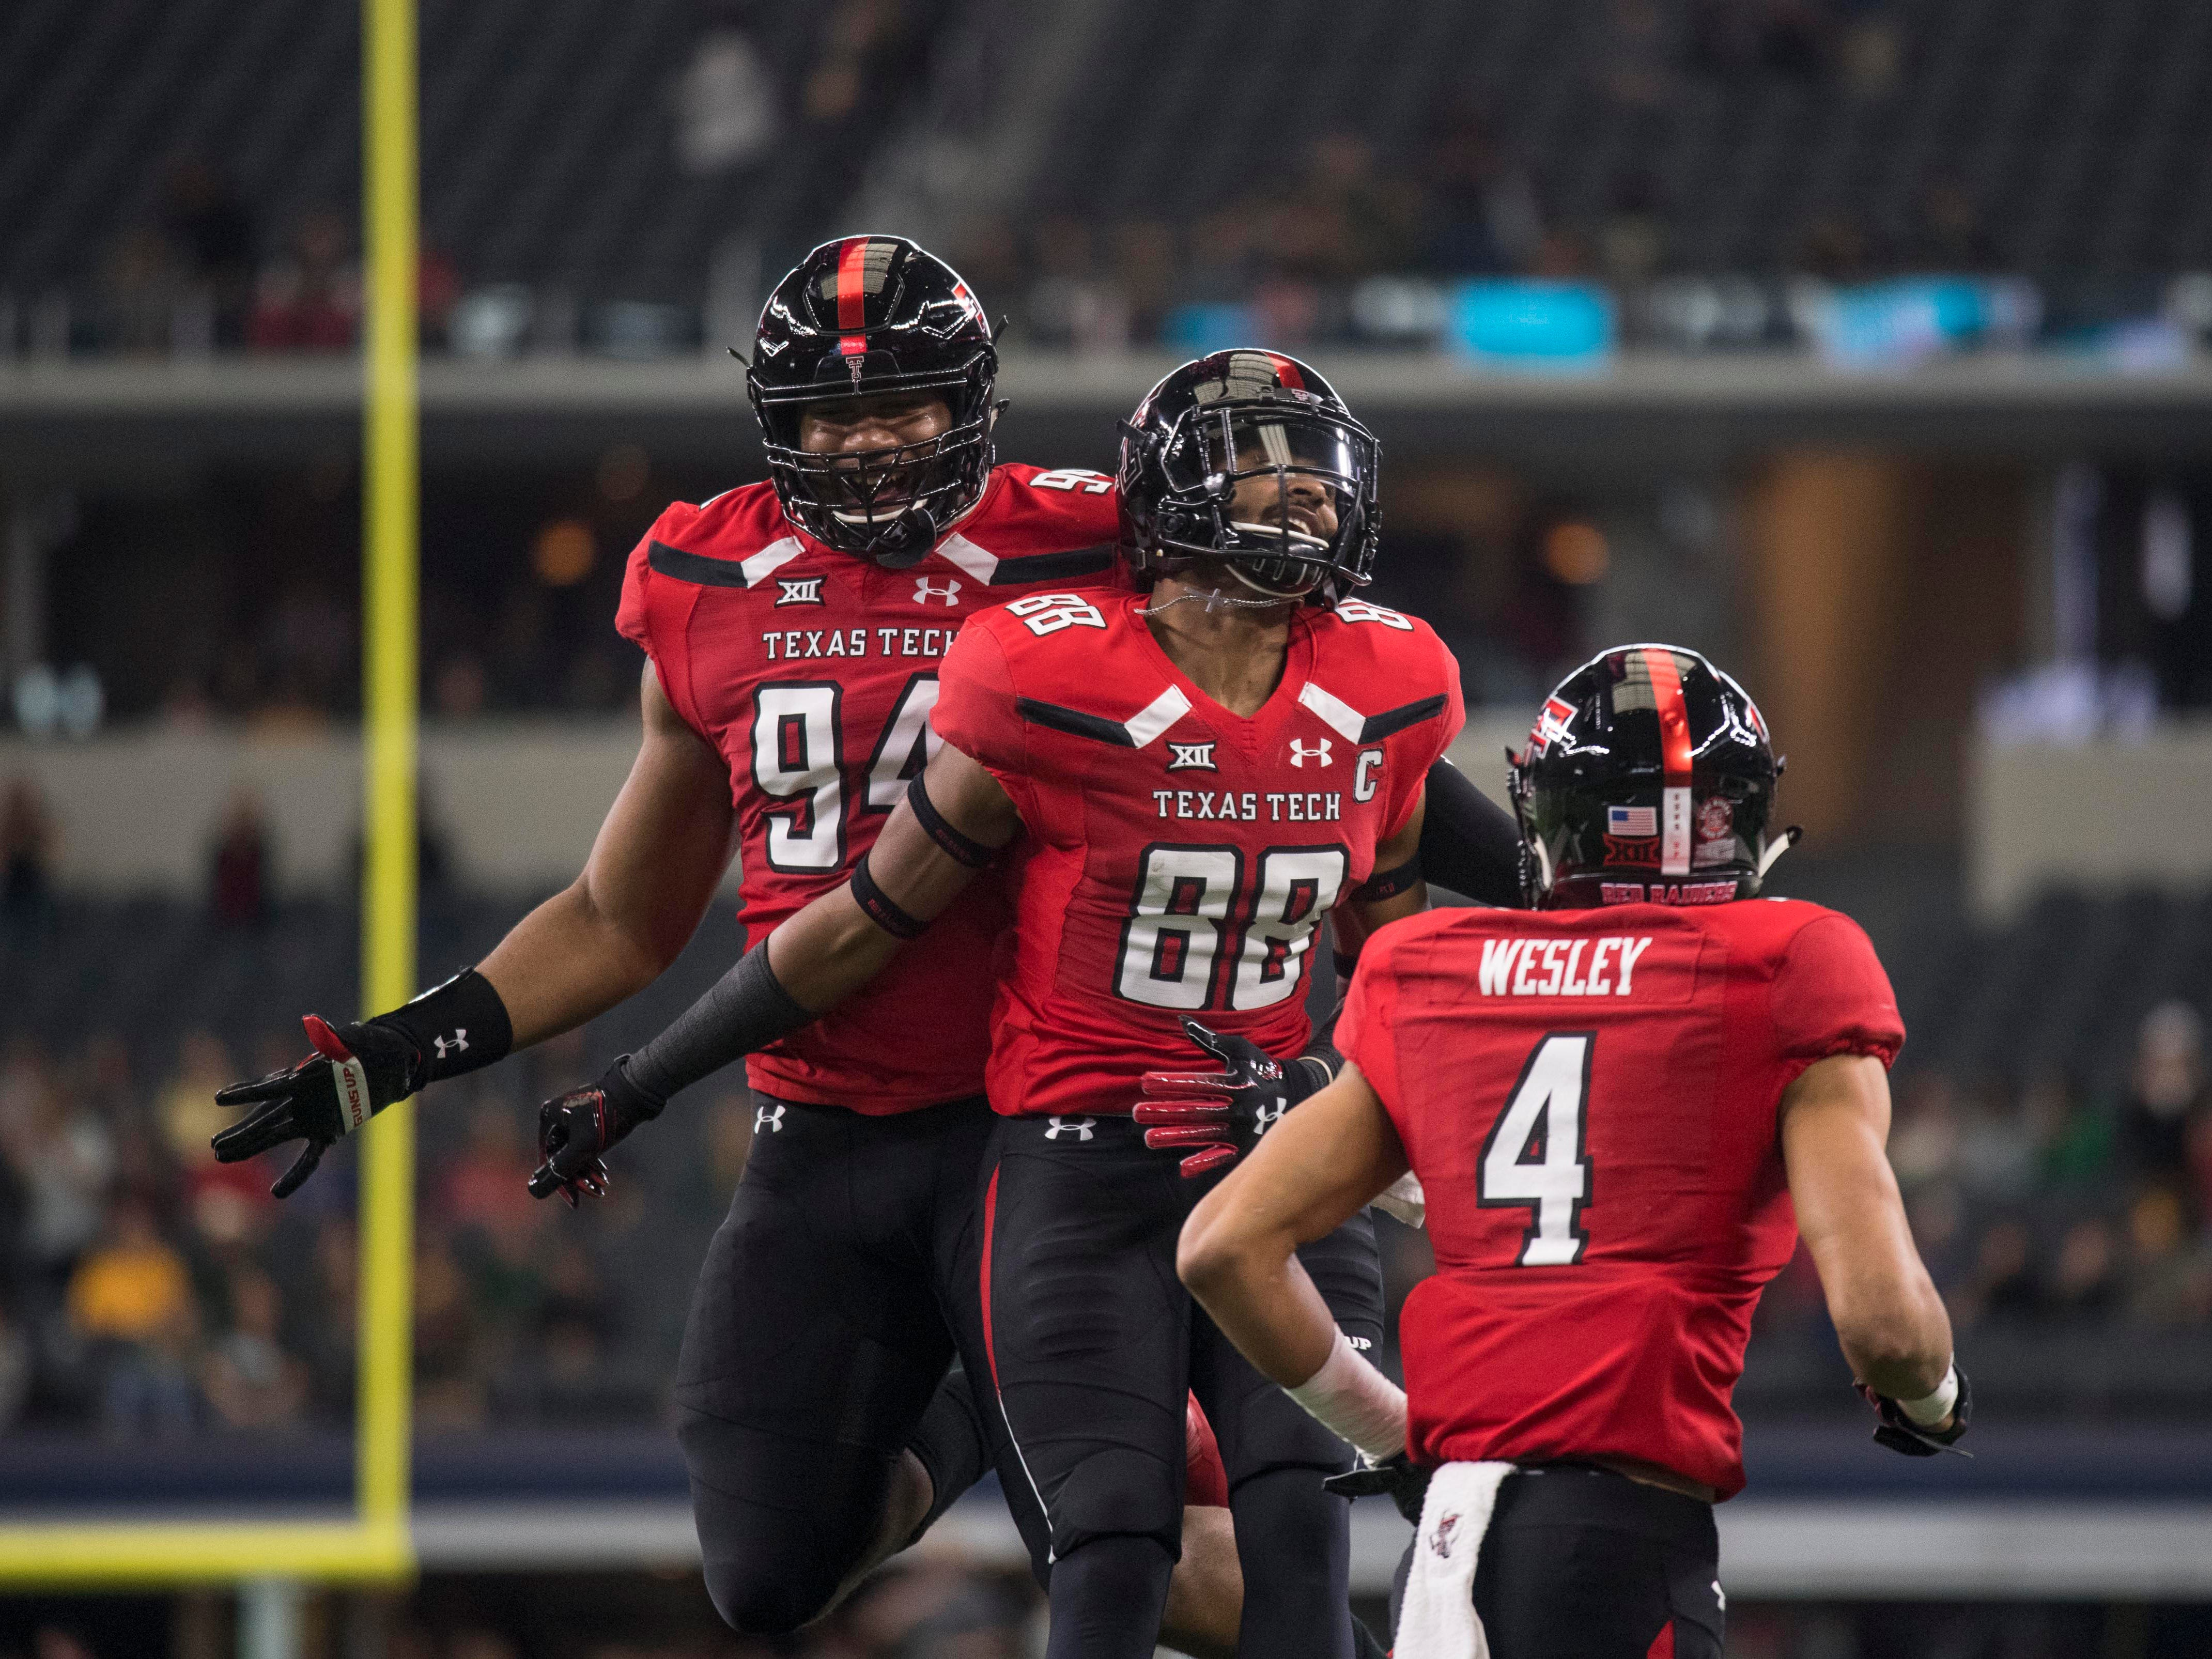 Nov 24, 2018; Arlington, TX, USA; Texas Tech Red Raiders defensive lineman Lonzell Gilmore (94), wide receiver Ja'Deion High (88) and wide receiver Antoine Wesley (4) celebrate a touchdown against the Baylor Bears during the first quarter at AT&T Stadium.